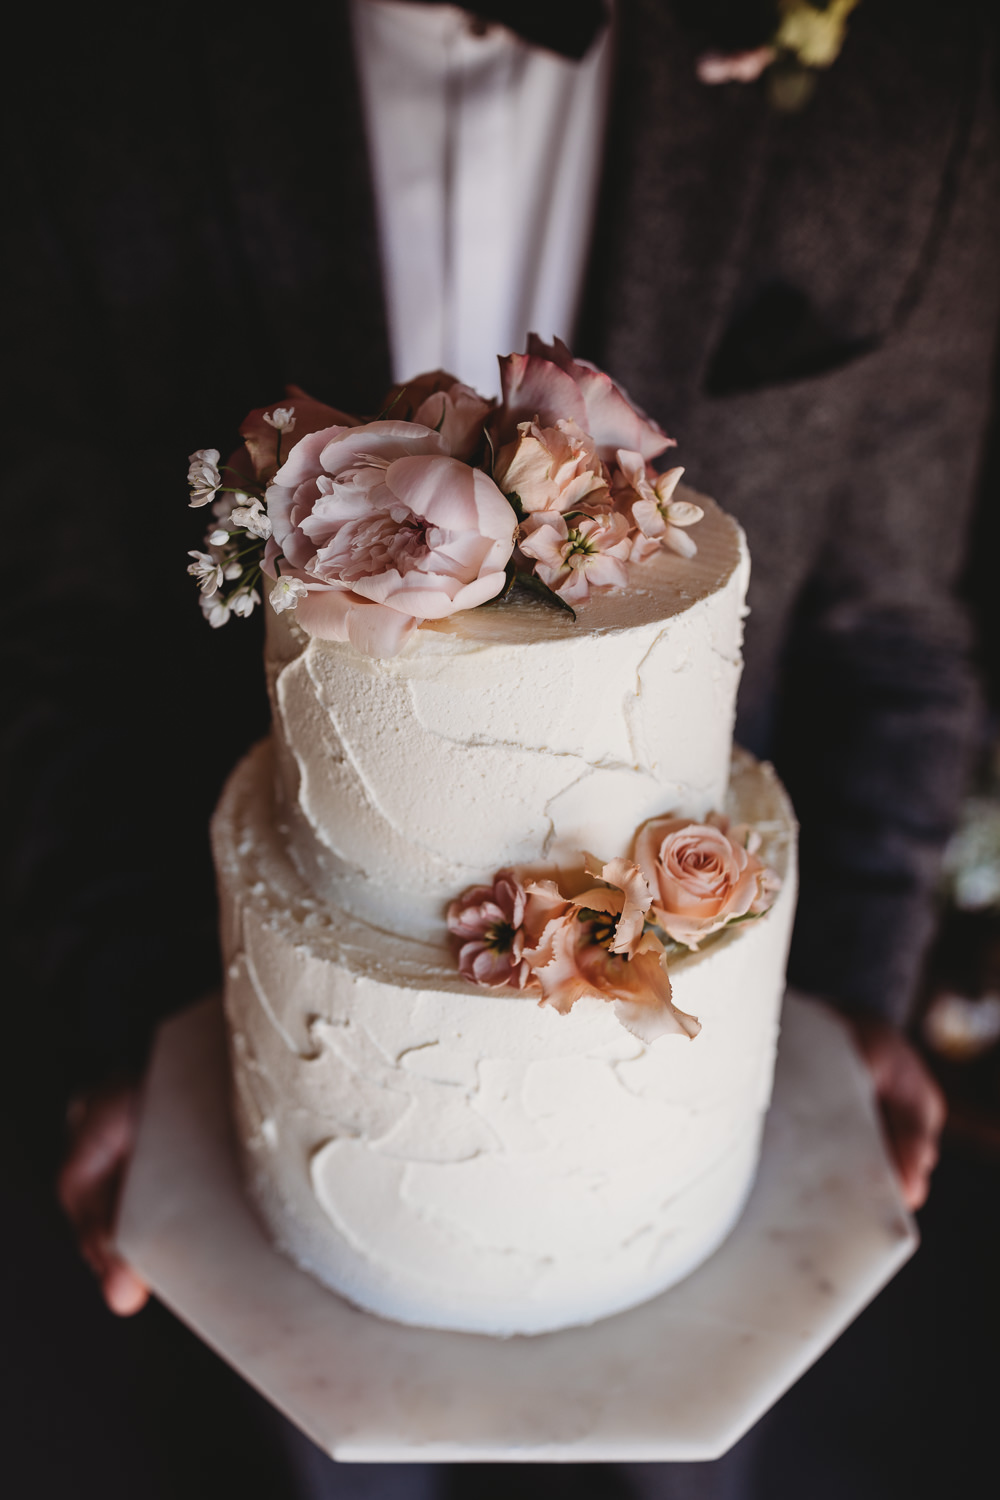 Rustic Buttercream Cake Pretty Pink Flowers Marble Stand Barn Wedding Ideas Thyme Lane Photography